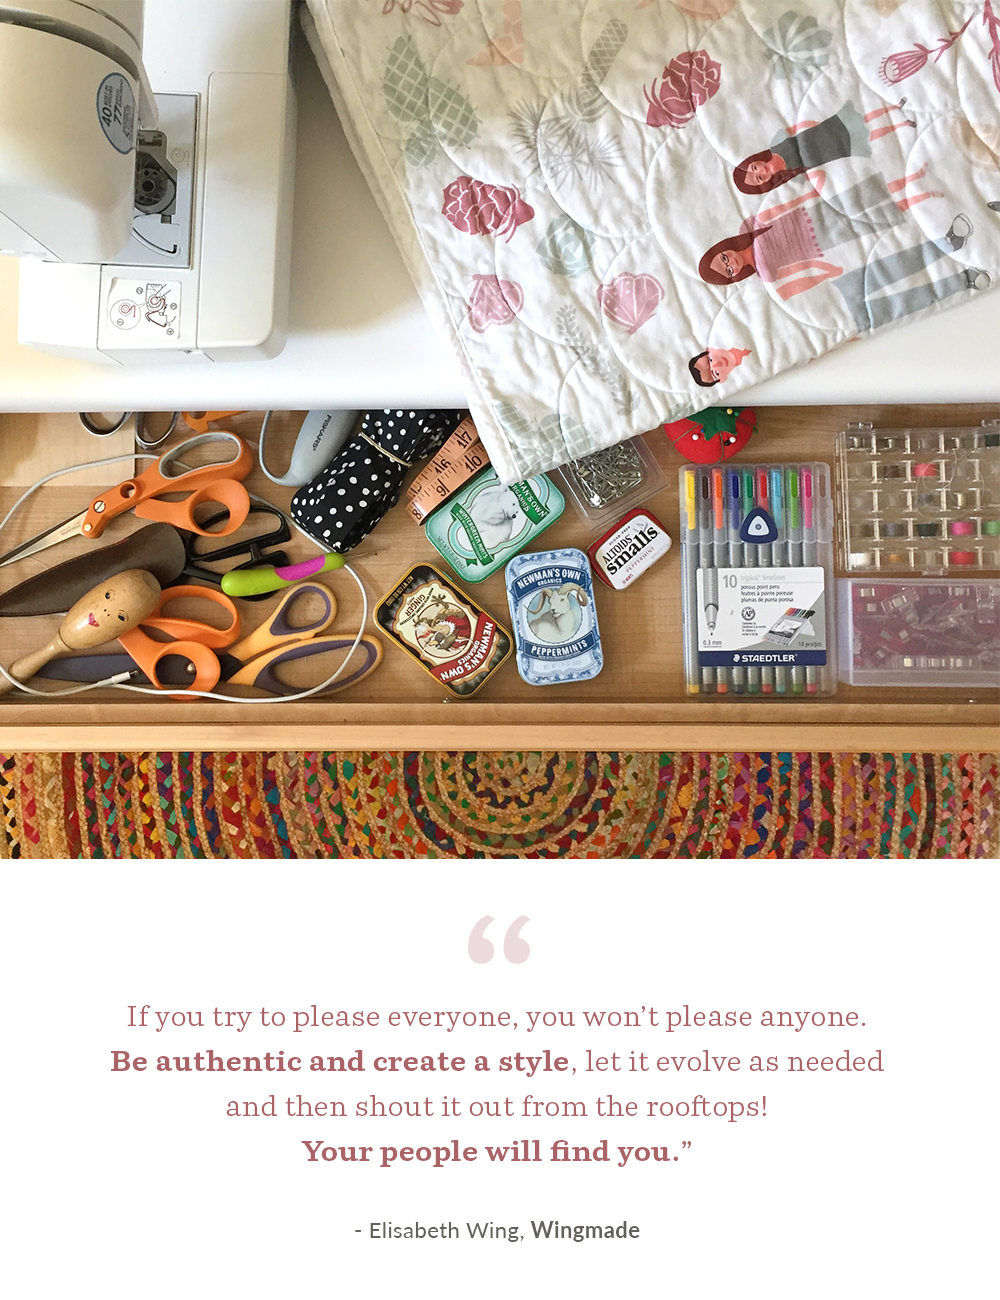 """If you try to please everyone, you won't please anyone. Be authentic and create a style, let it evolve as needed and then shout it out from the rooftops! Your people will find you."" - Elisabeth Wing of Wingmade 